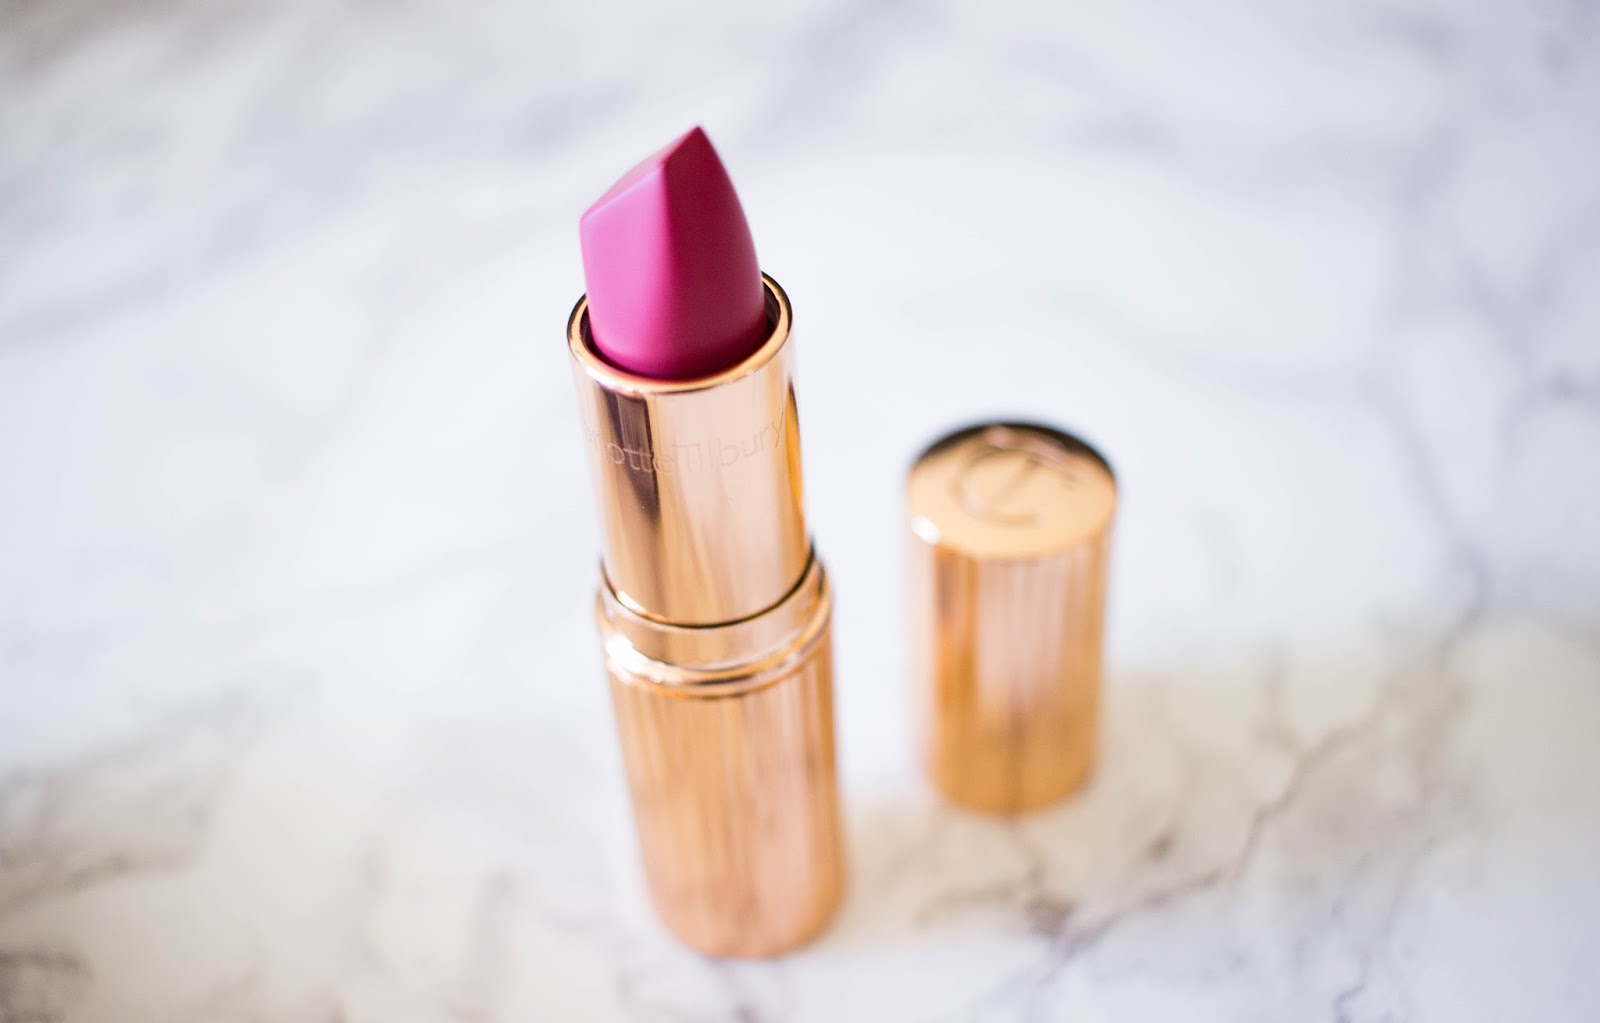 Charlotte Tilbury lipstick in Amazing Grace, Lipstick, Katie Writes, Beauty blog,